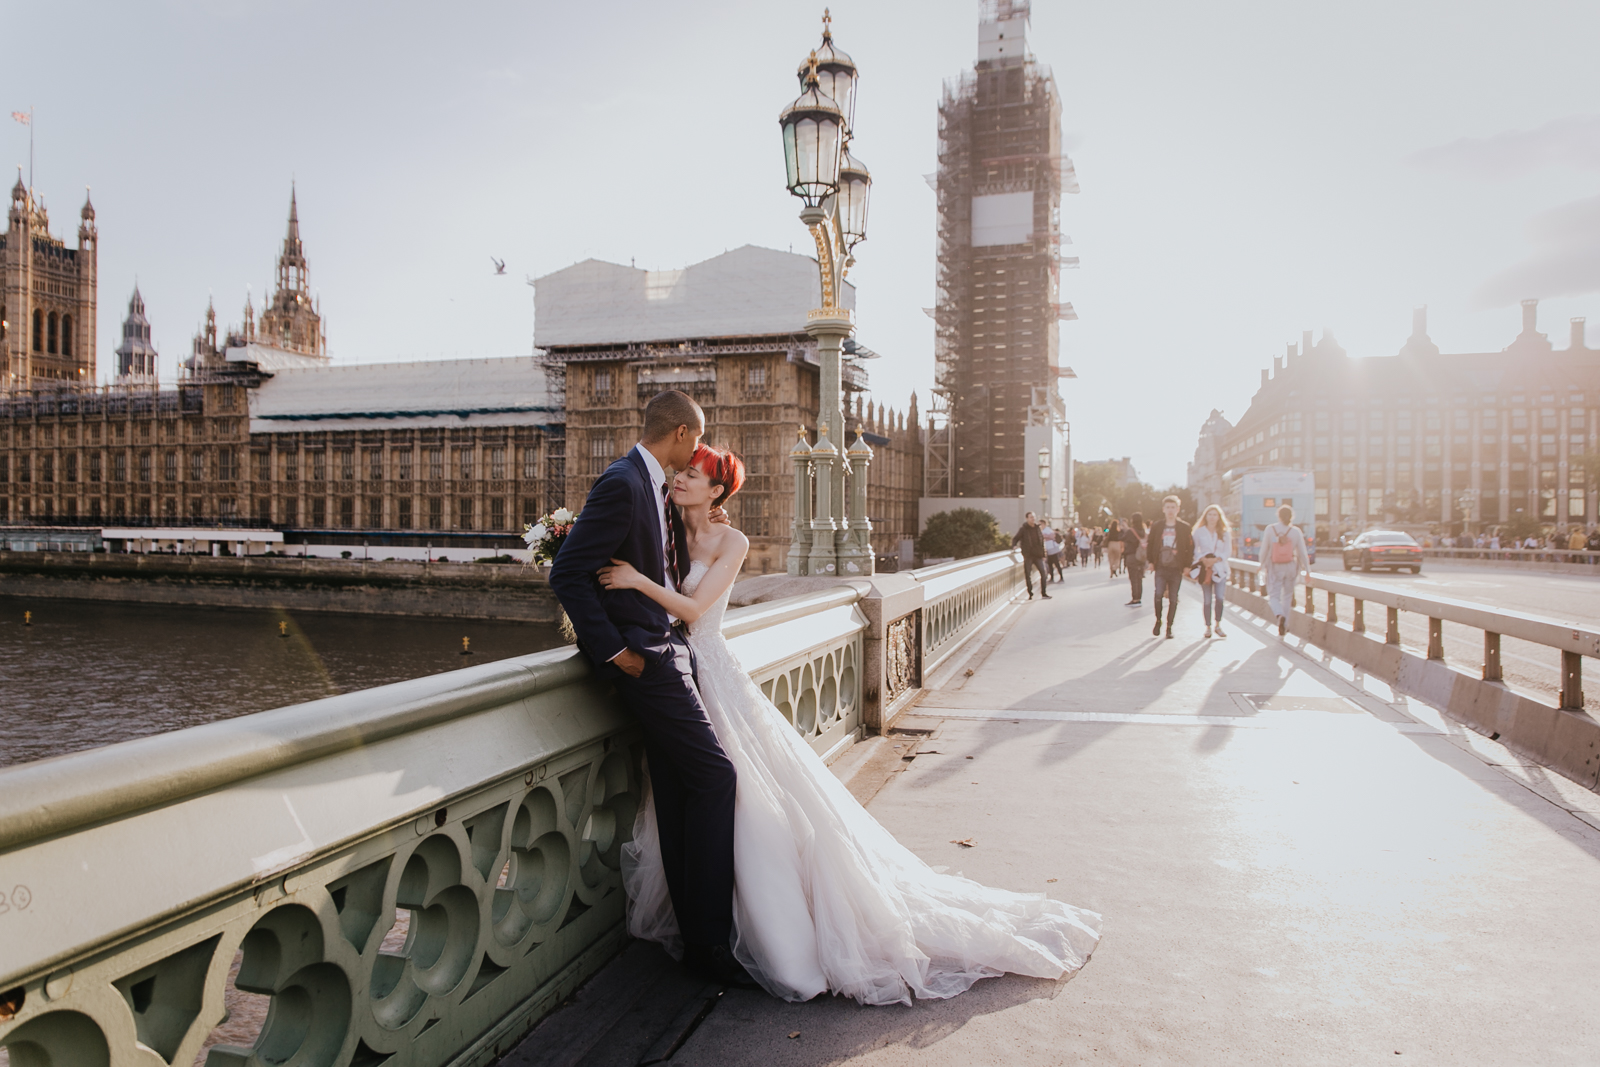 Lovely Elopement in London by Leyre Cañizares